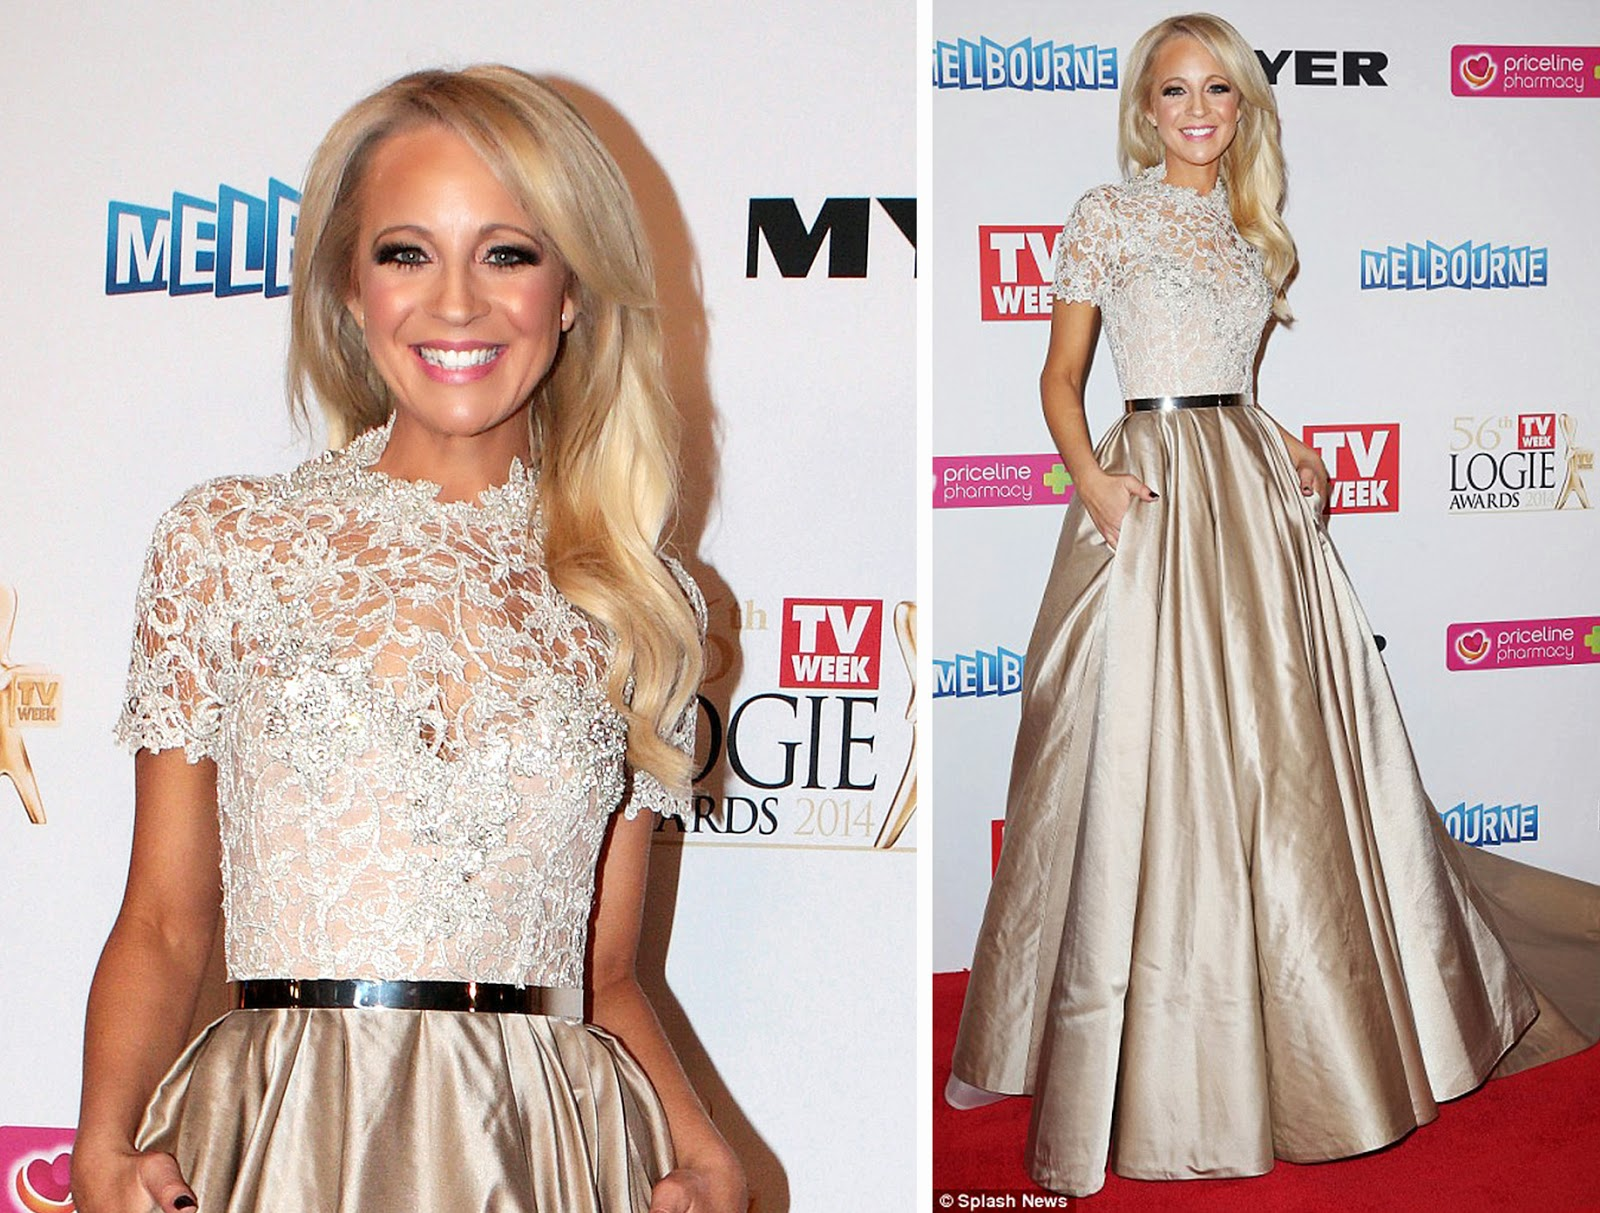 Carrie Bickmore Logies 2014